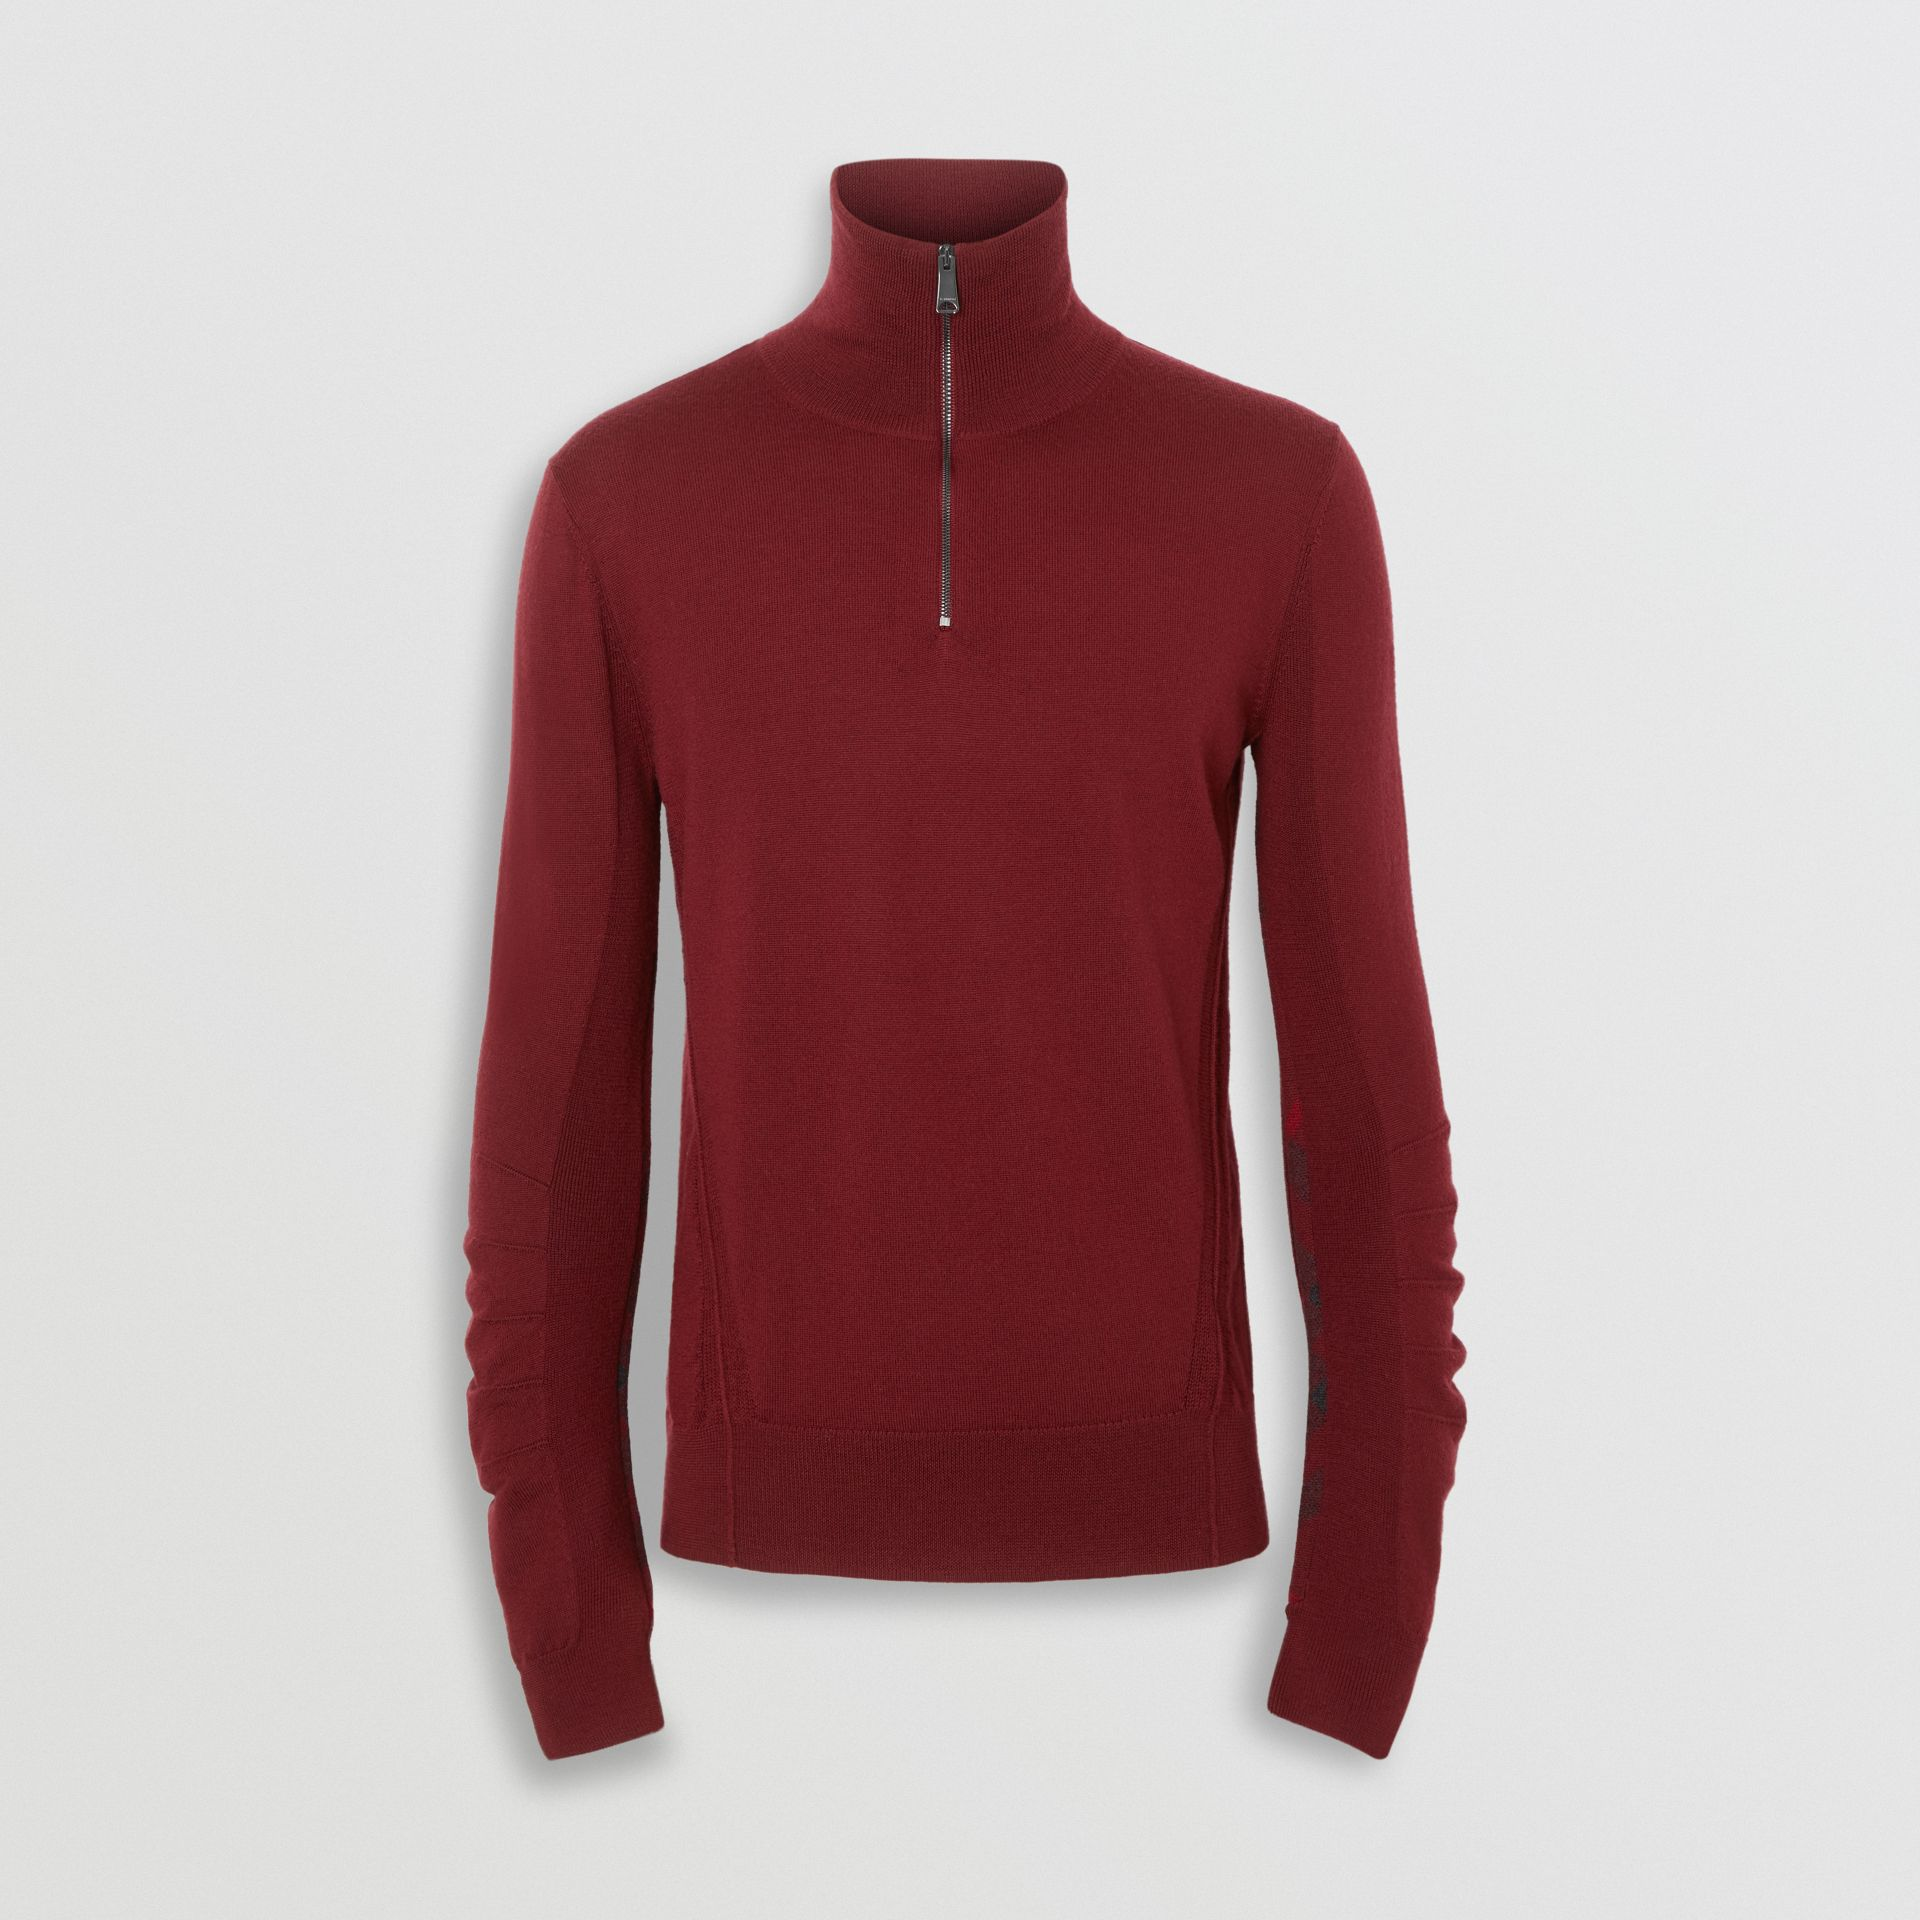 Merino Wool Half-zip Sweater in Burgundy - Men | Burberry Australia - gallery image 3